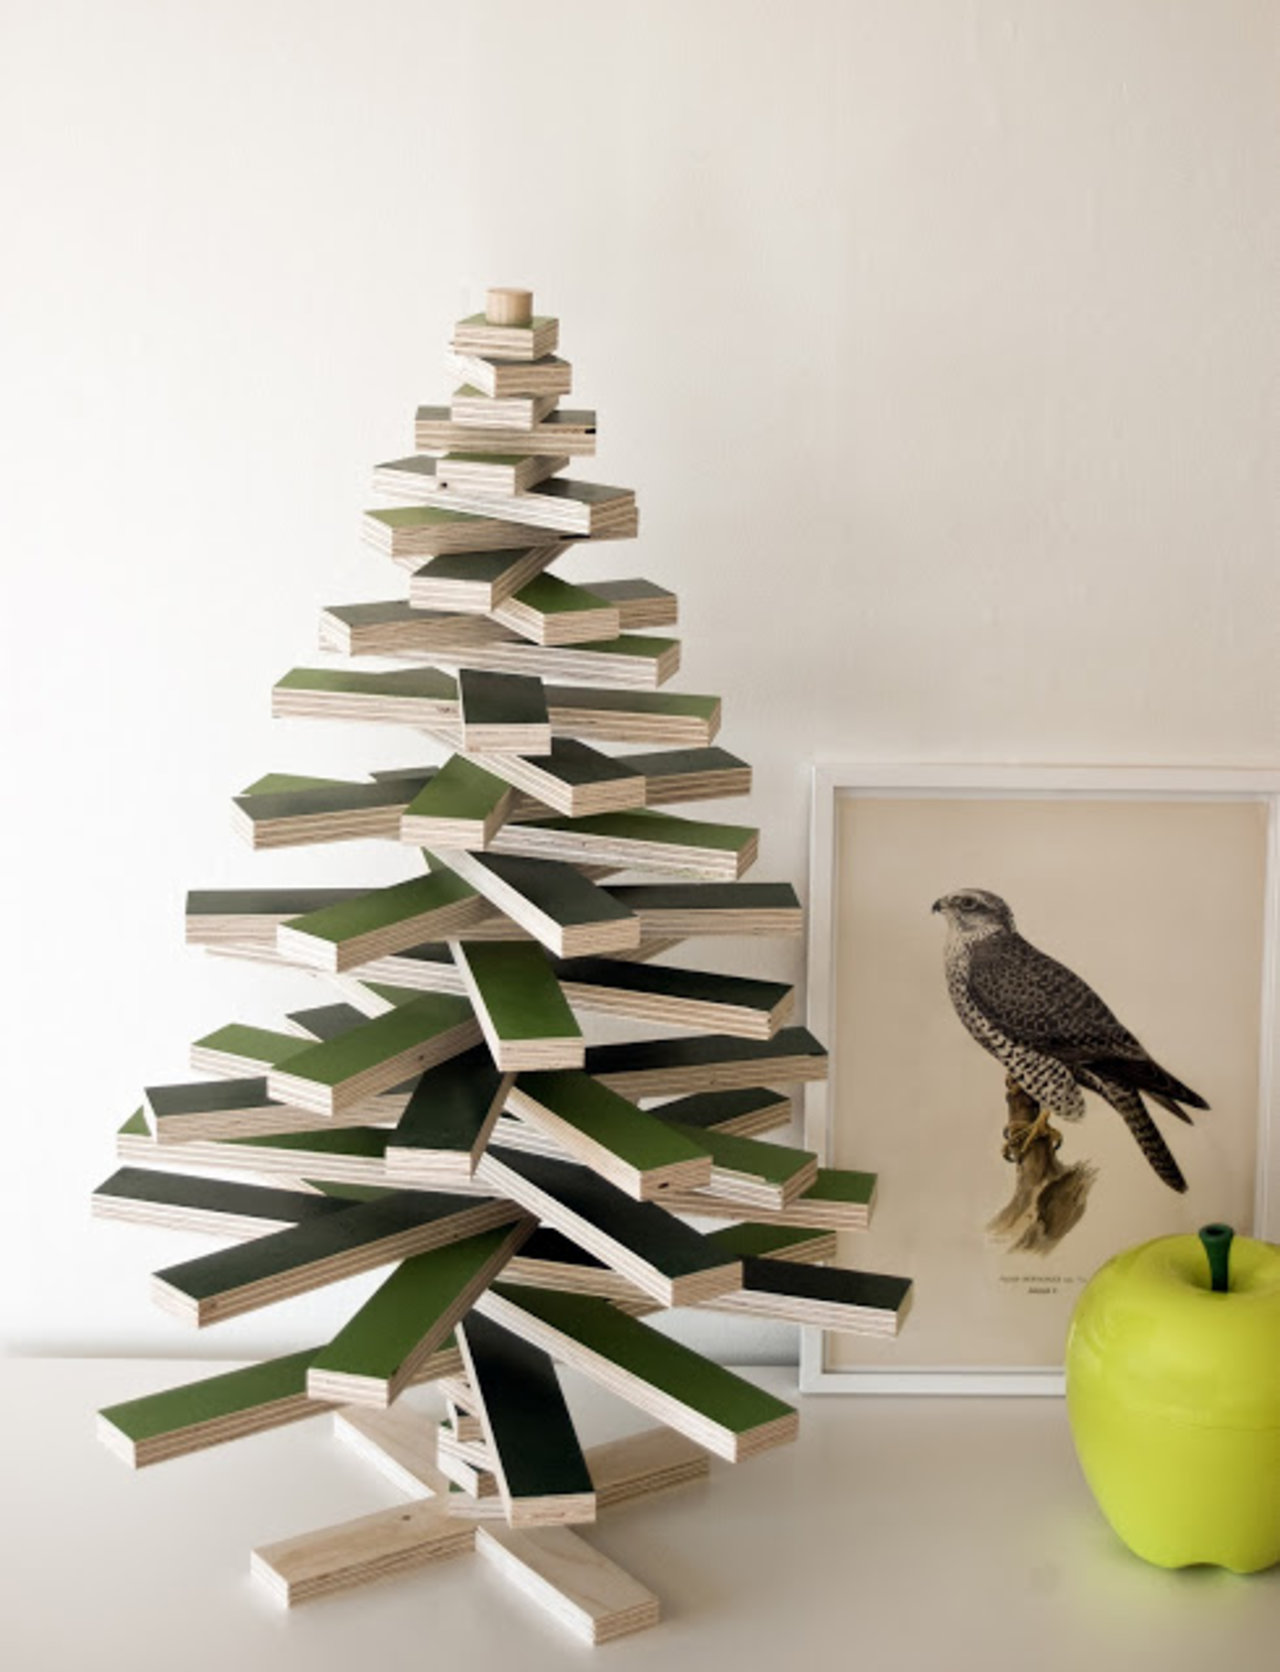 10 stylish alternatives to the traditional christmas tree the accent see for yourself here are ten festive ideas that will have you rethinking the star of your holiday decor scheme this year solutioingenieria Choice Image